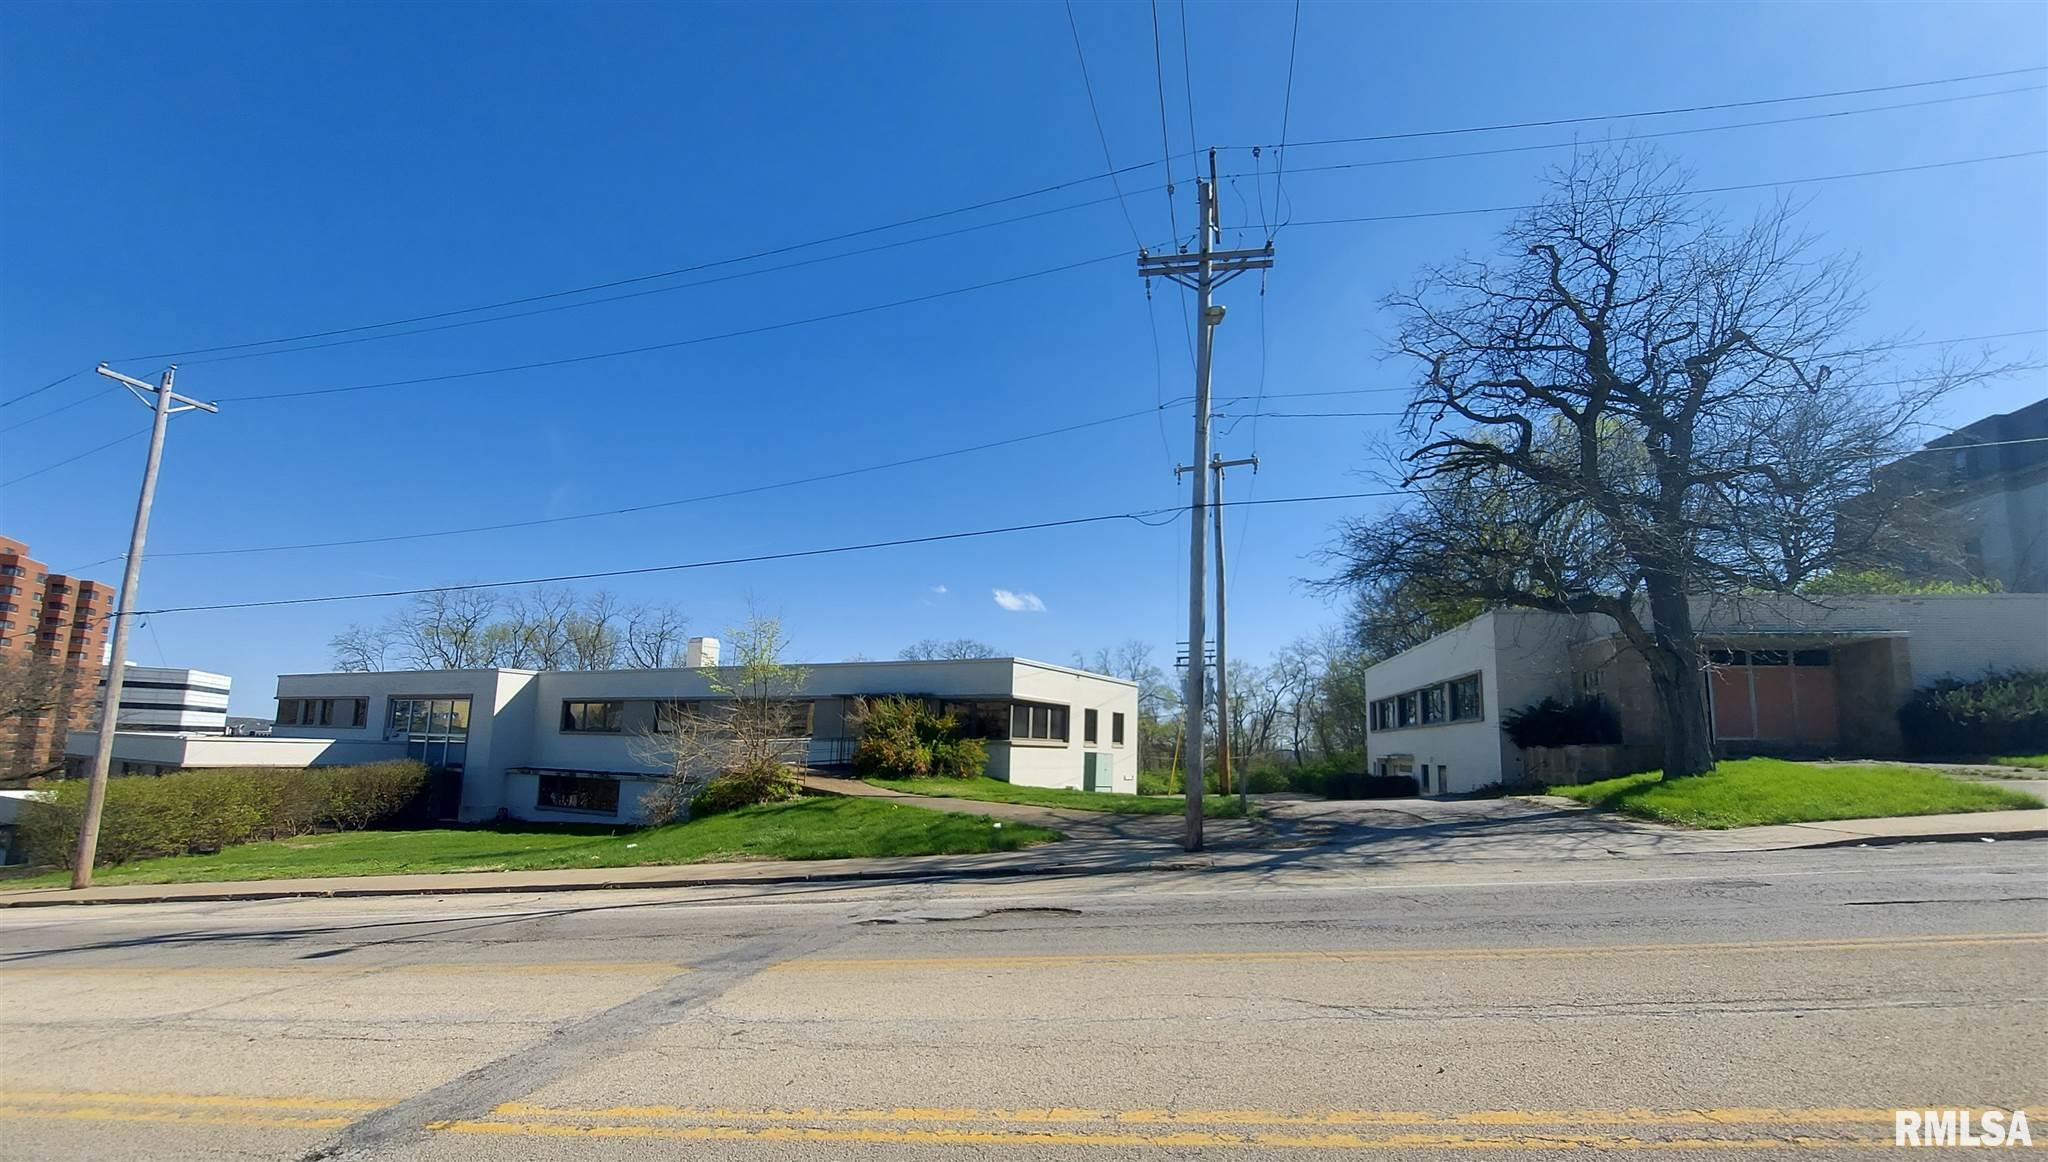 1101 and 1111 MAIN Property Photo - Peoria, IL real estate listing